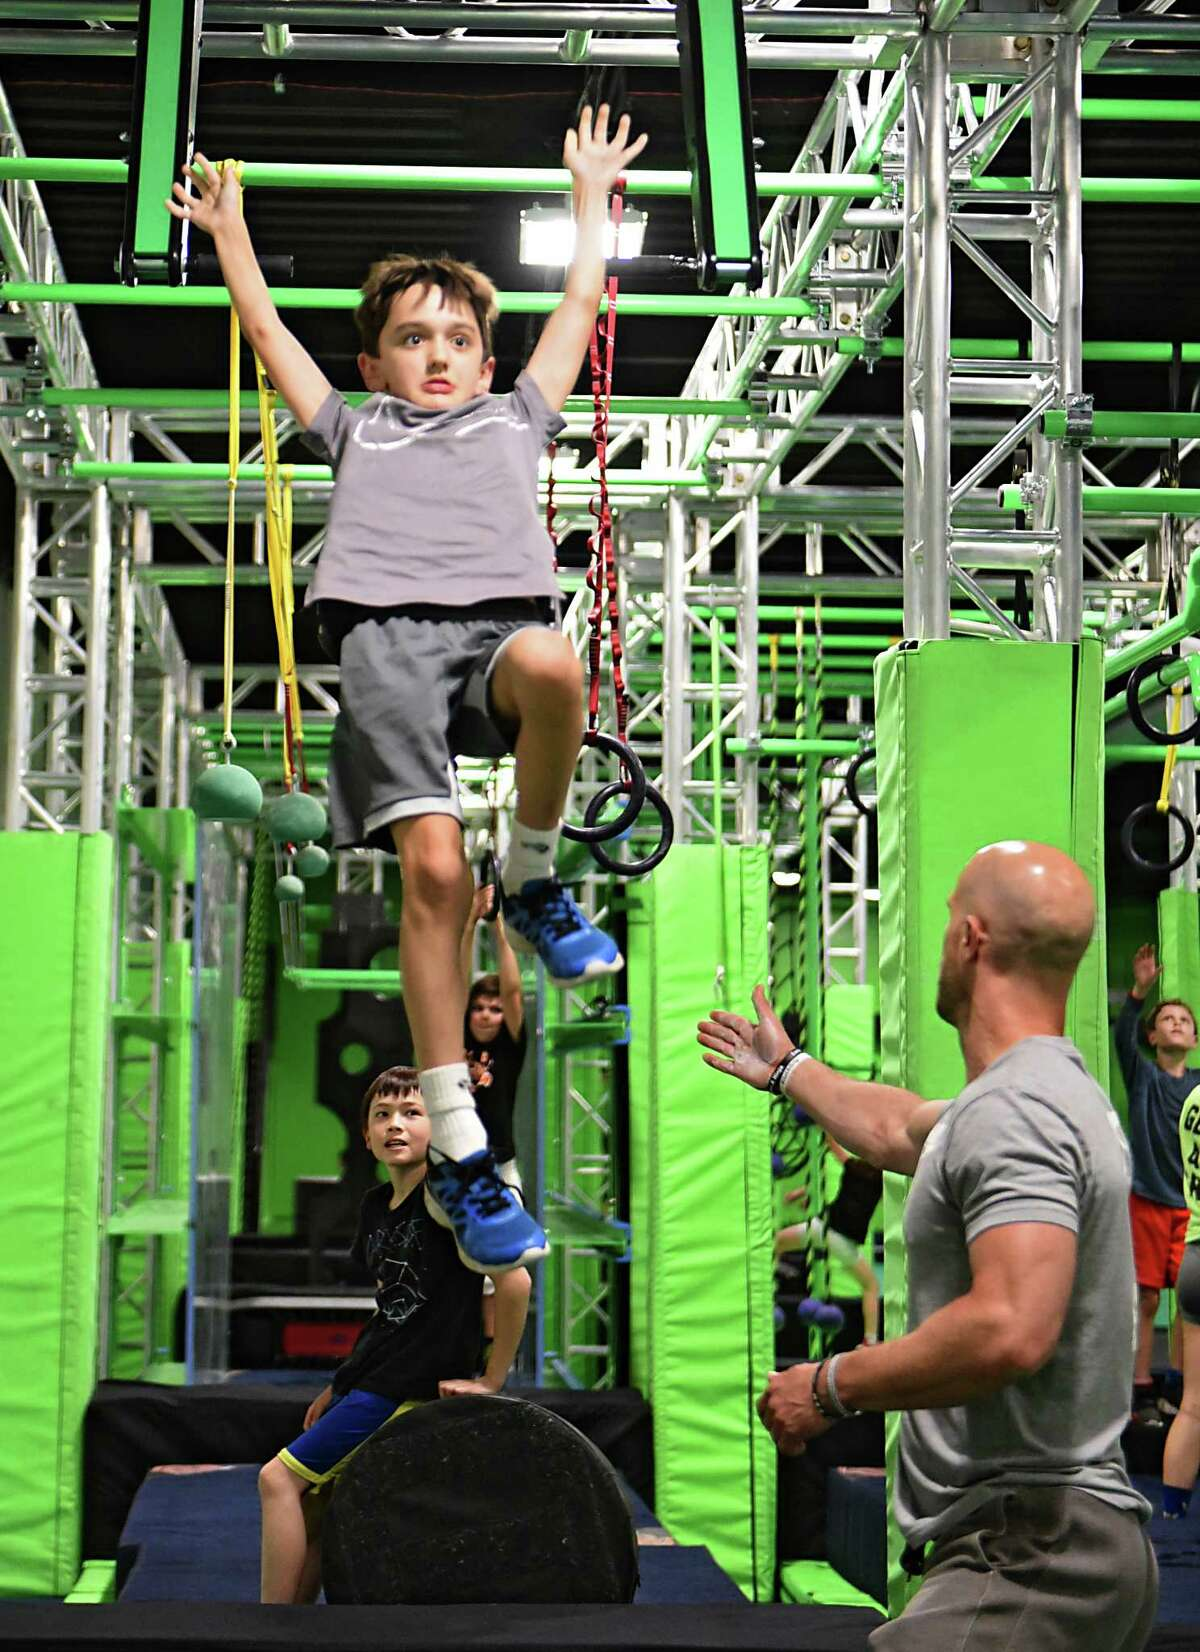 Co-owner and ninja coach Geoff Snyder, right, helps Christopher, 9, of Albany practice on the ninja course in a newly opened Ninja Lab at Crossgates Commons on Wednesday, June 19, 2019 in Guilderland, N.Y. (Lori Van Buren/Times Union)